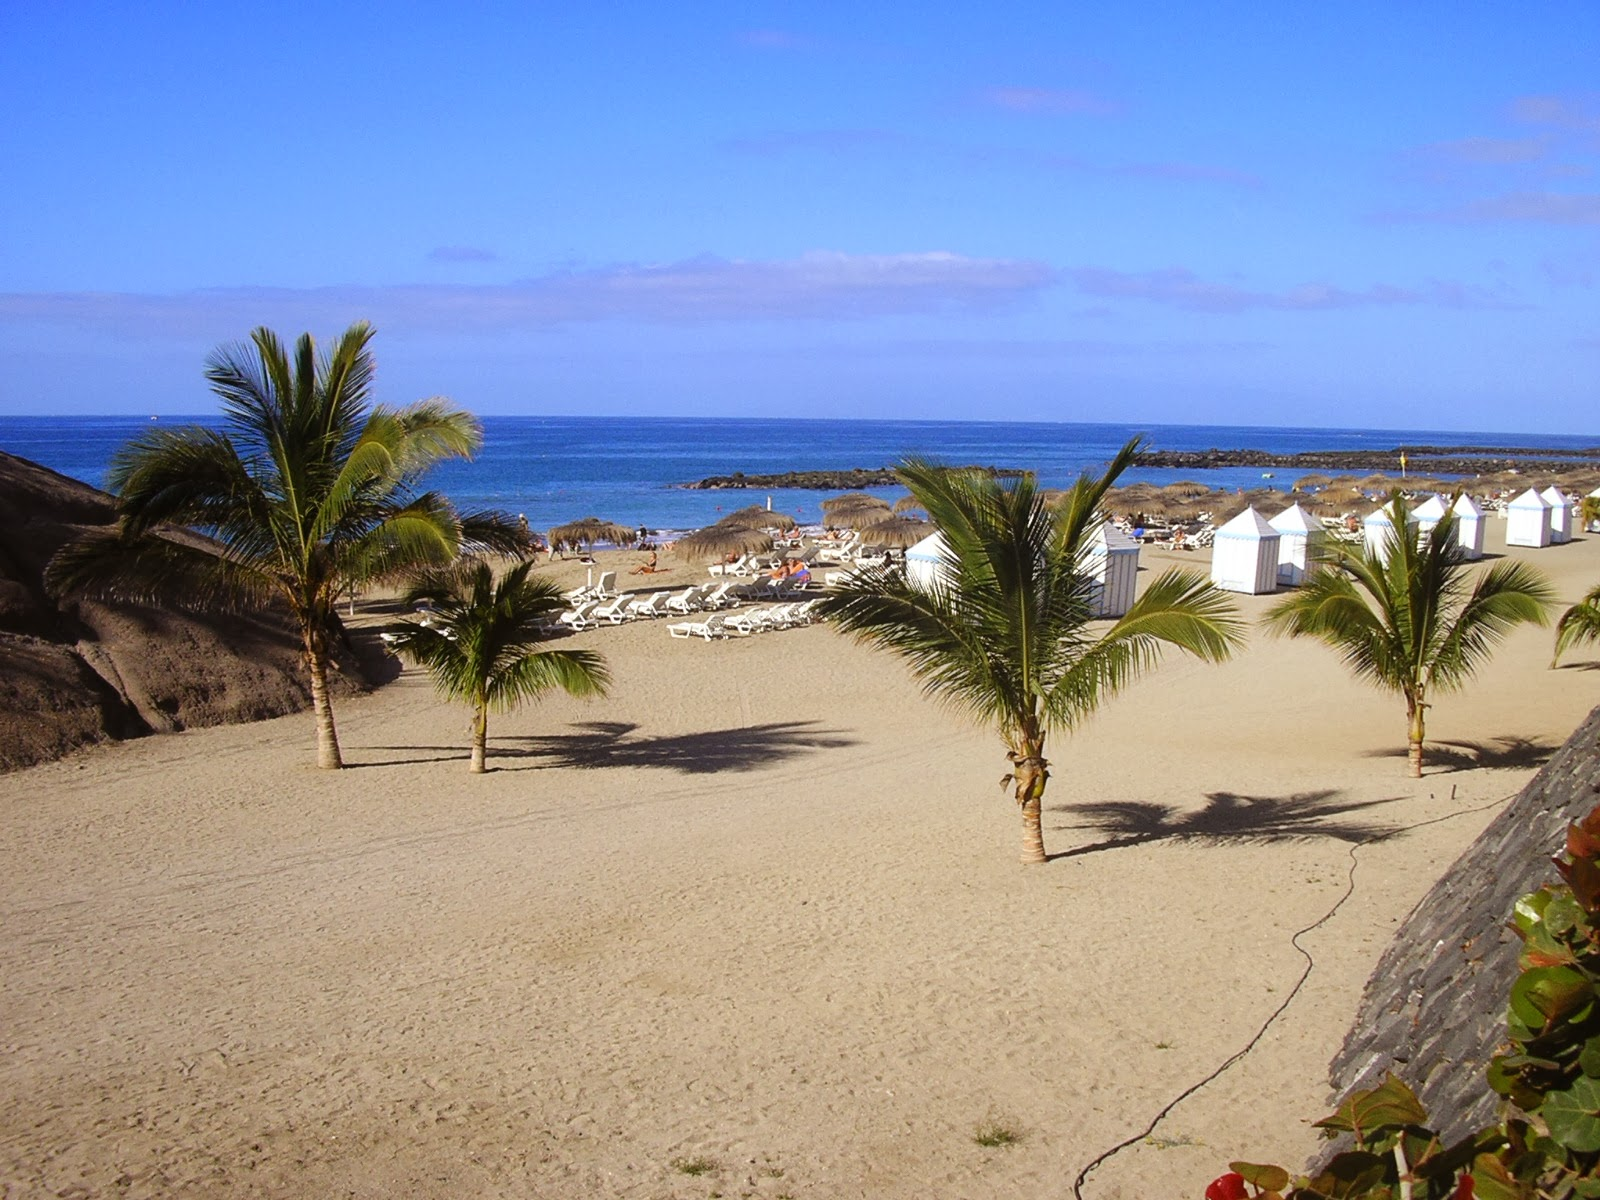 Beach in Tenerife, Spain